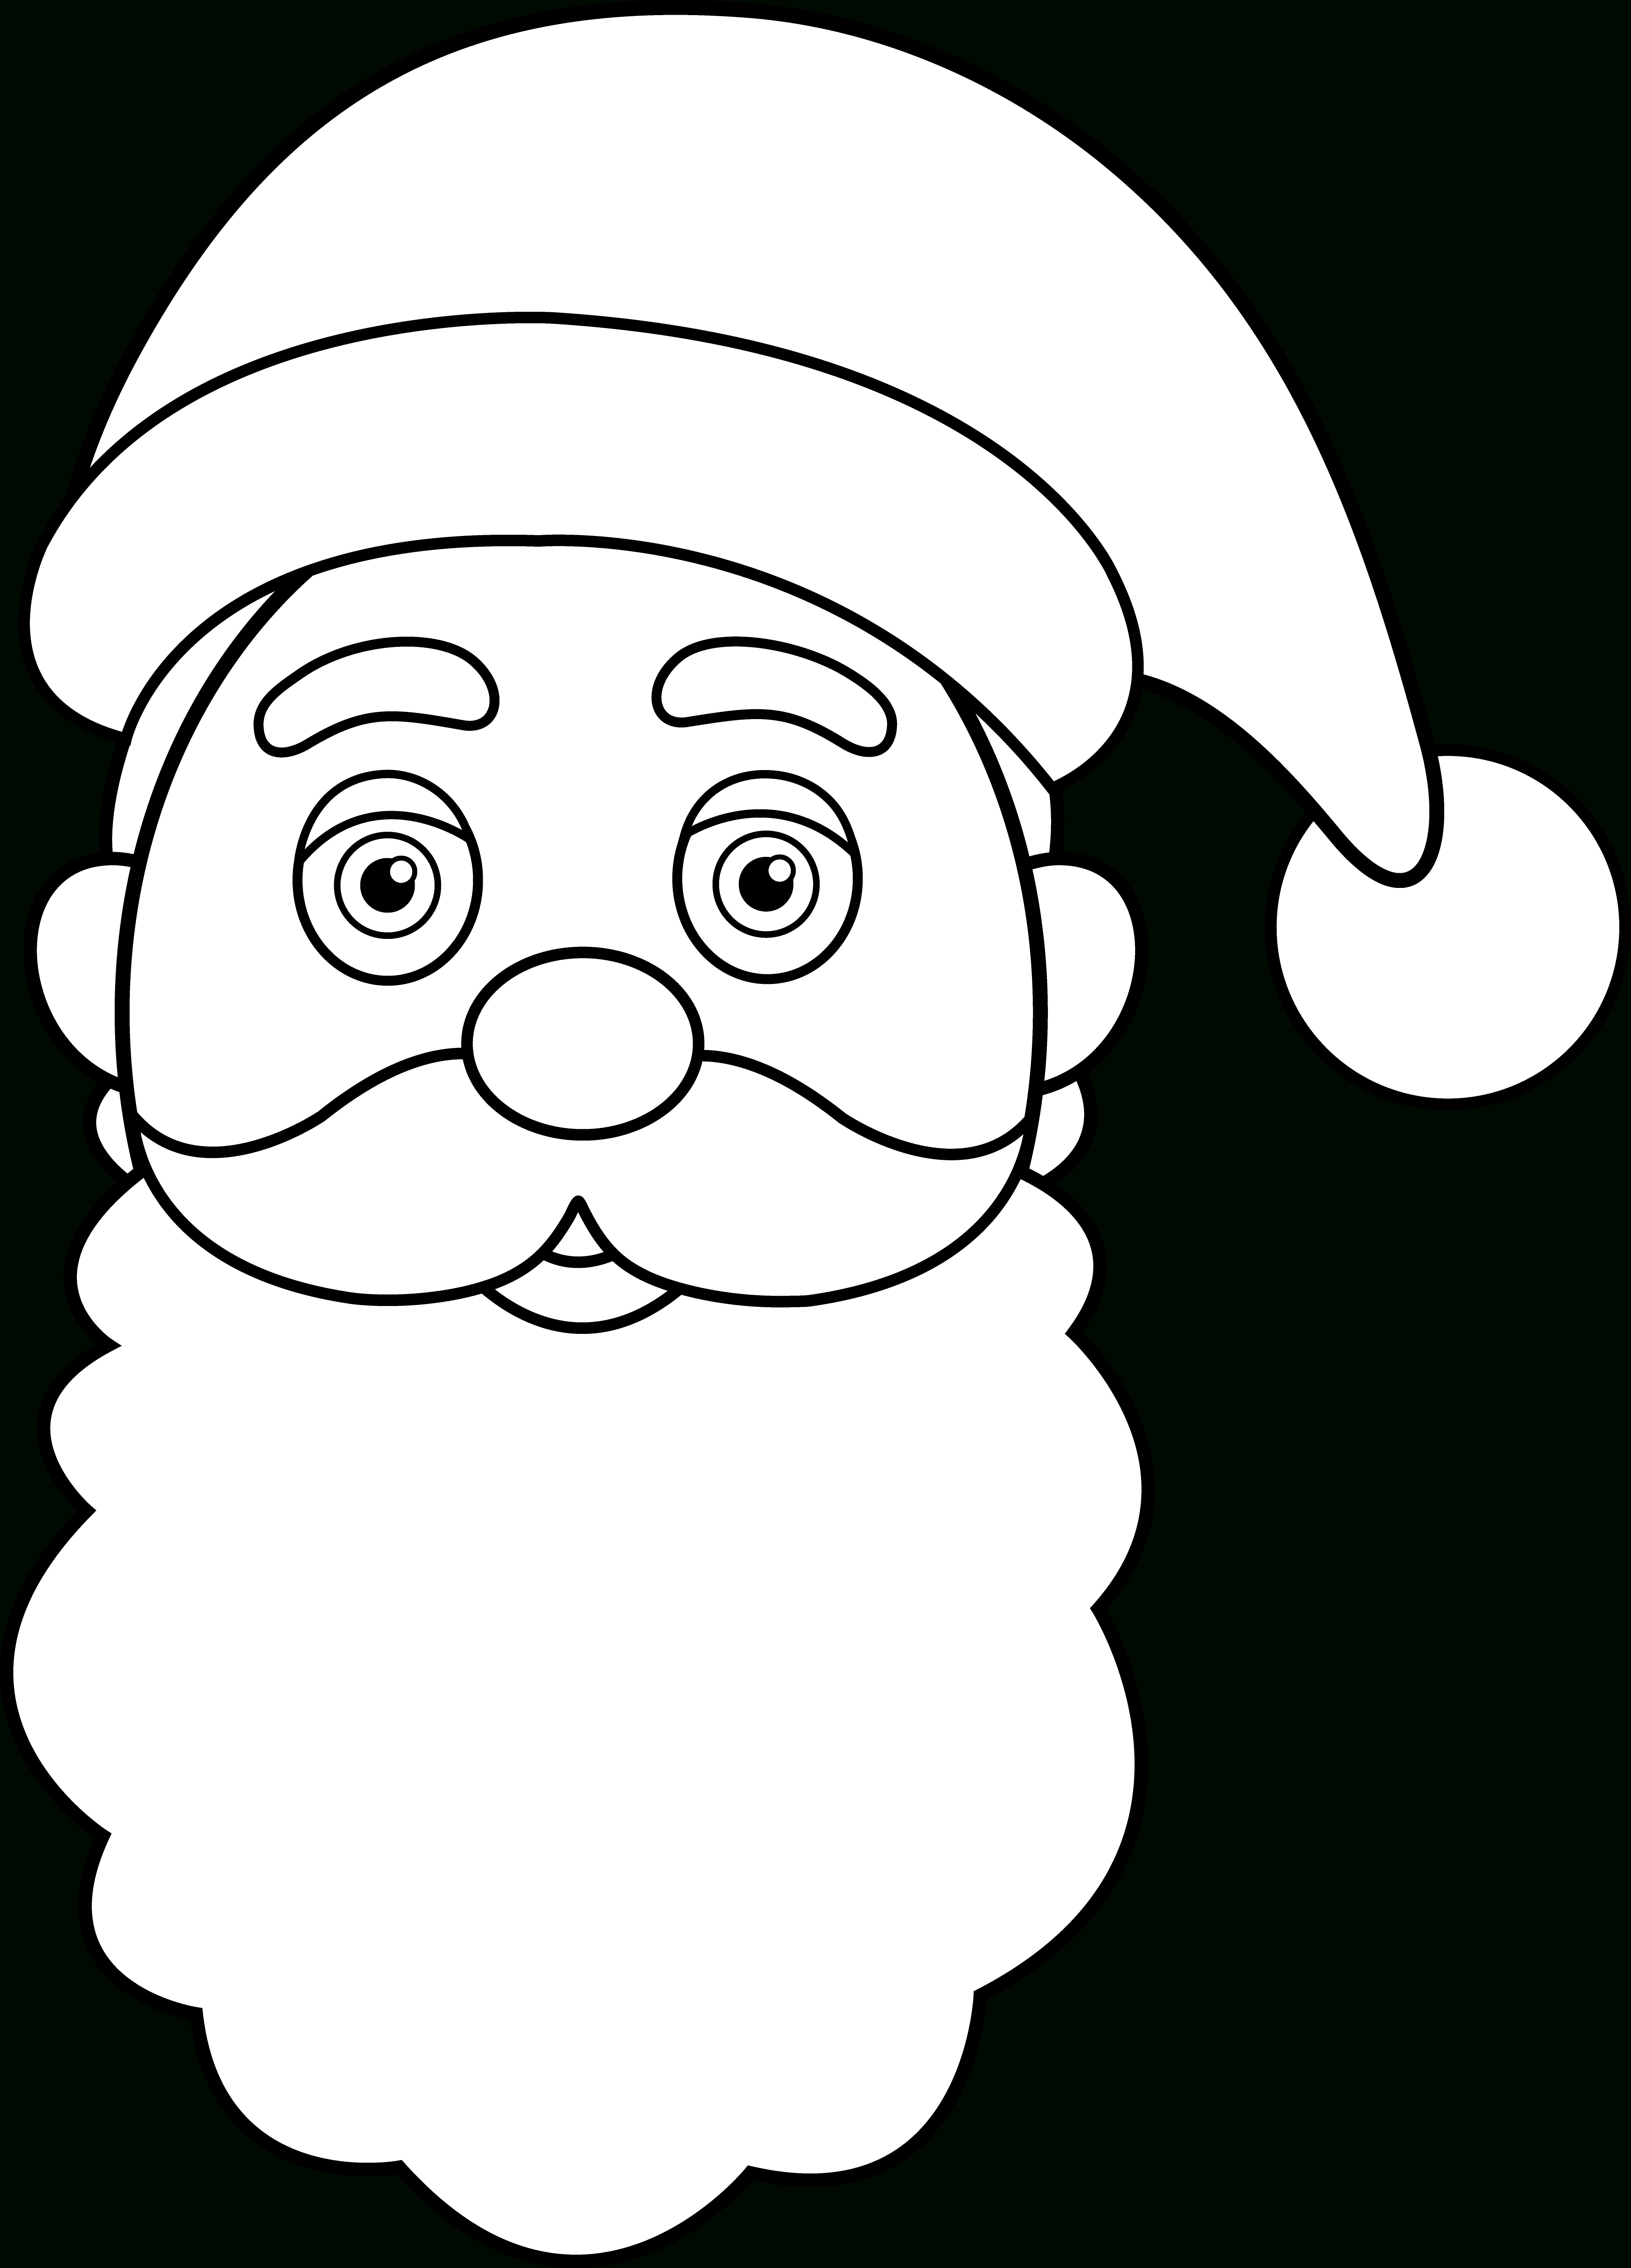 santa claus pictures to print santa drawing template at getdrawings free download claus santa print to pictures